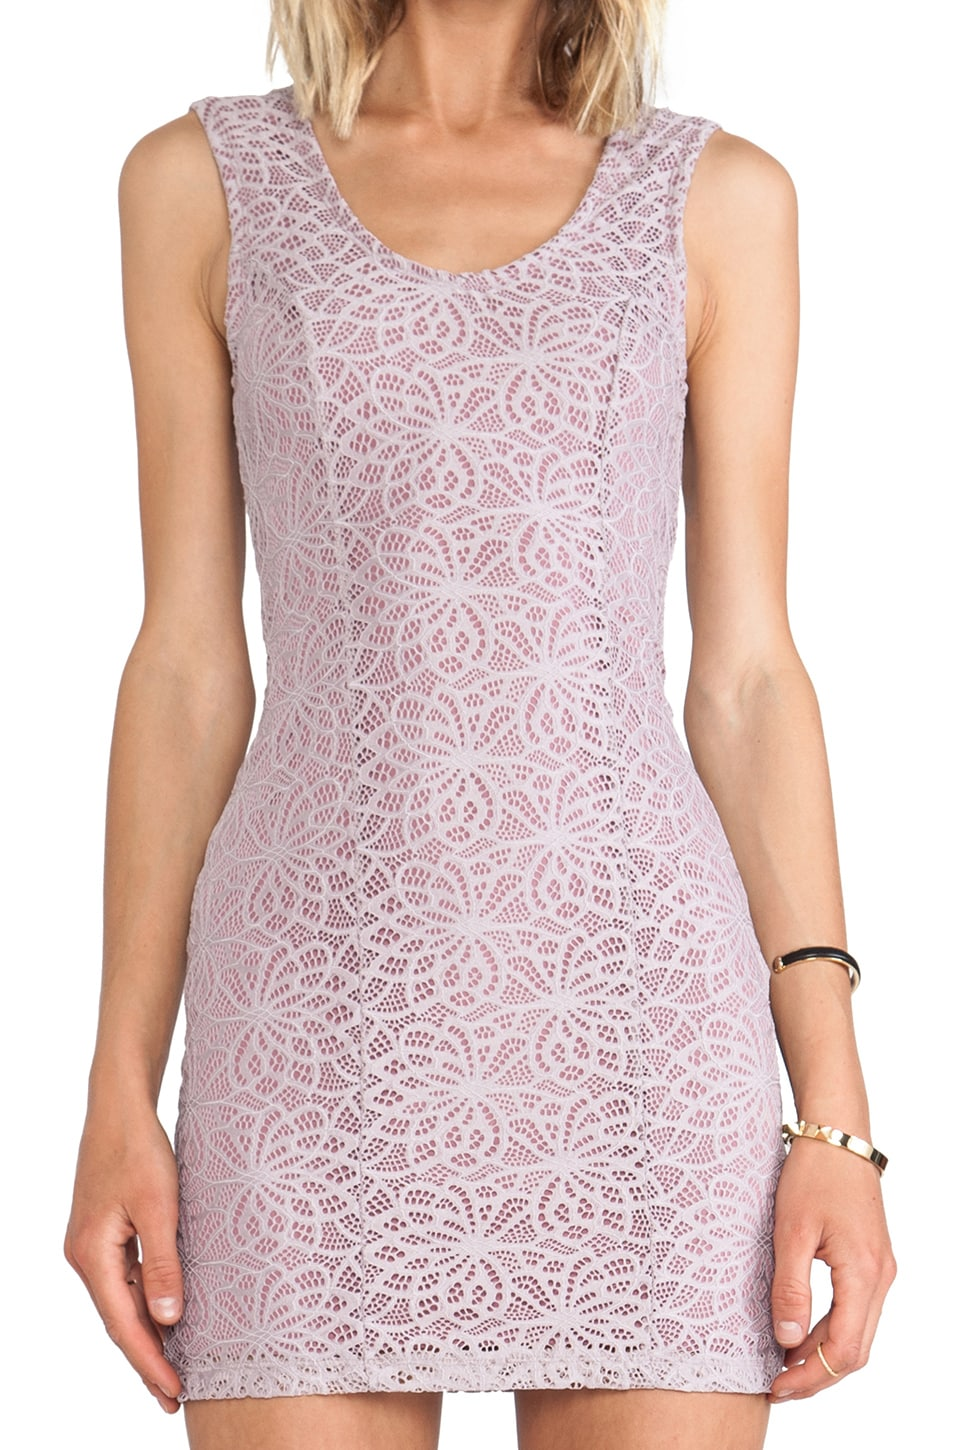 Lovers + Friends Au Natural Dress in Lavender Lace